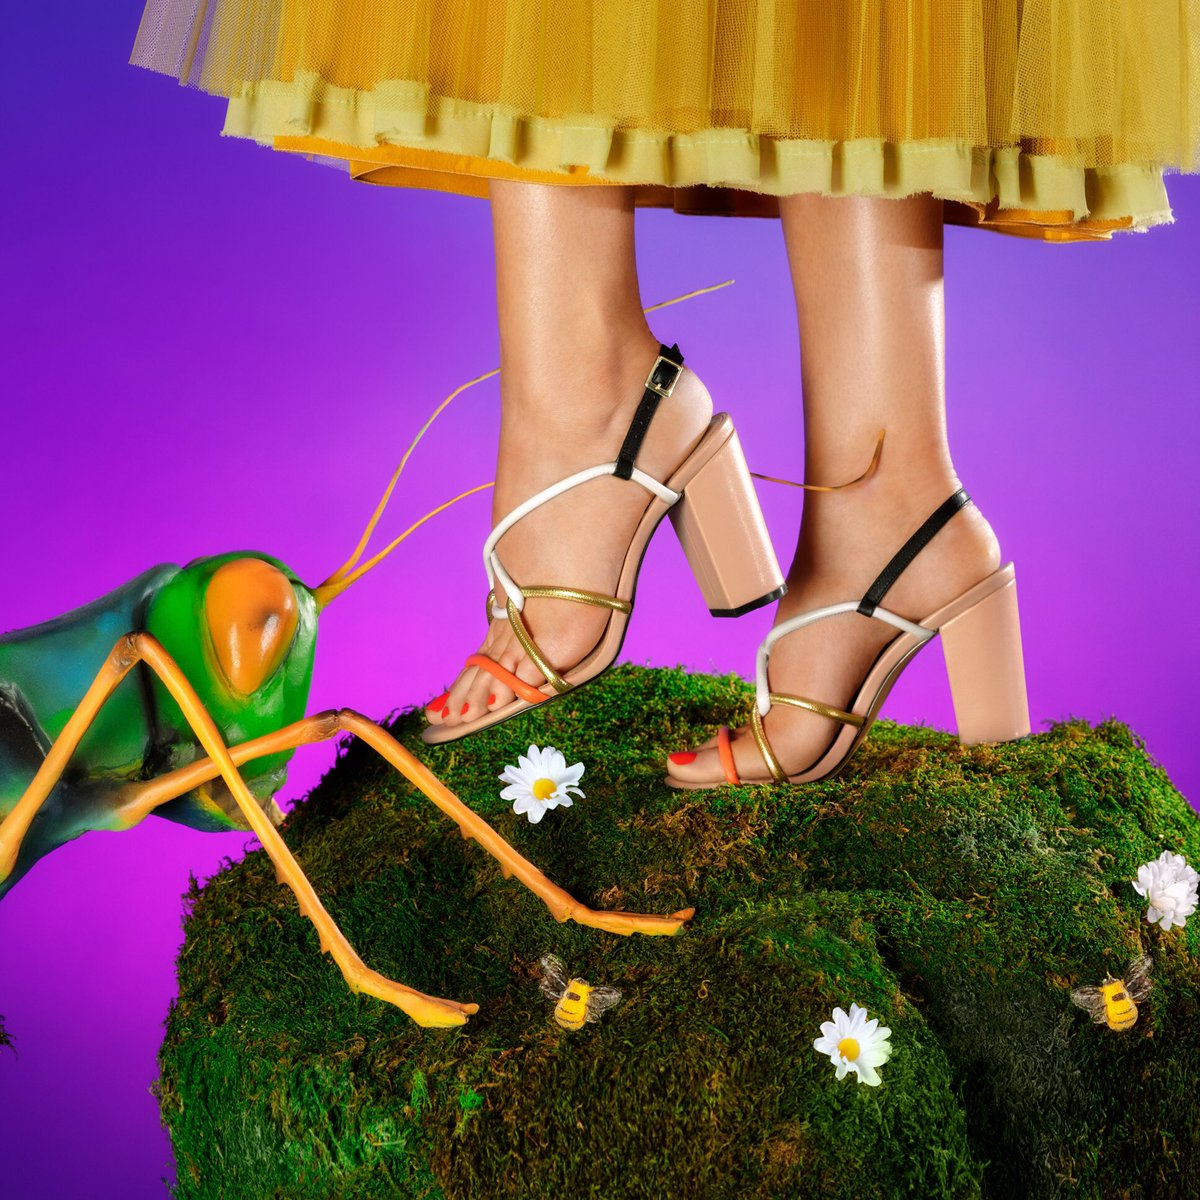 Bug out in this #TuesdayShoesday lewk by @kpcollections ???????????????????? https://t.co/RwZUymhaRN